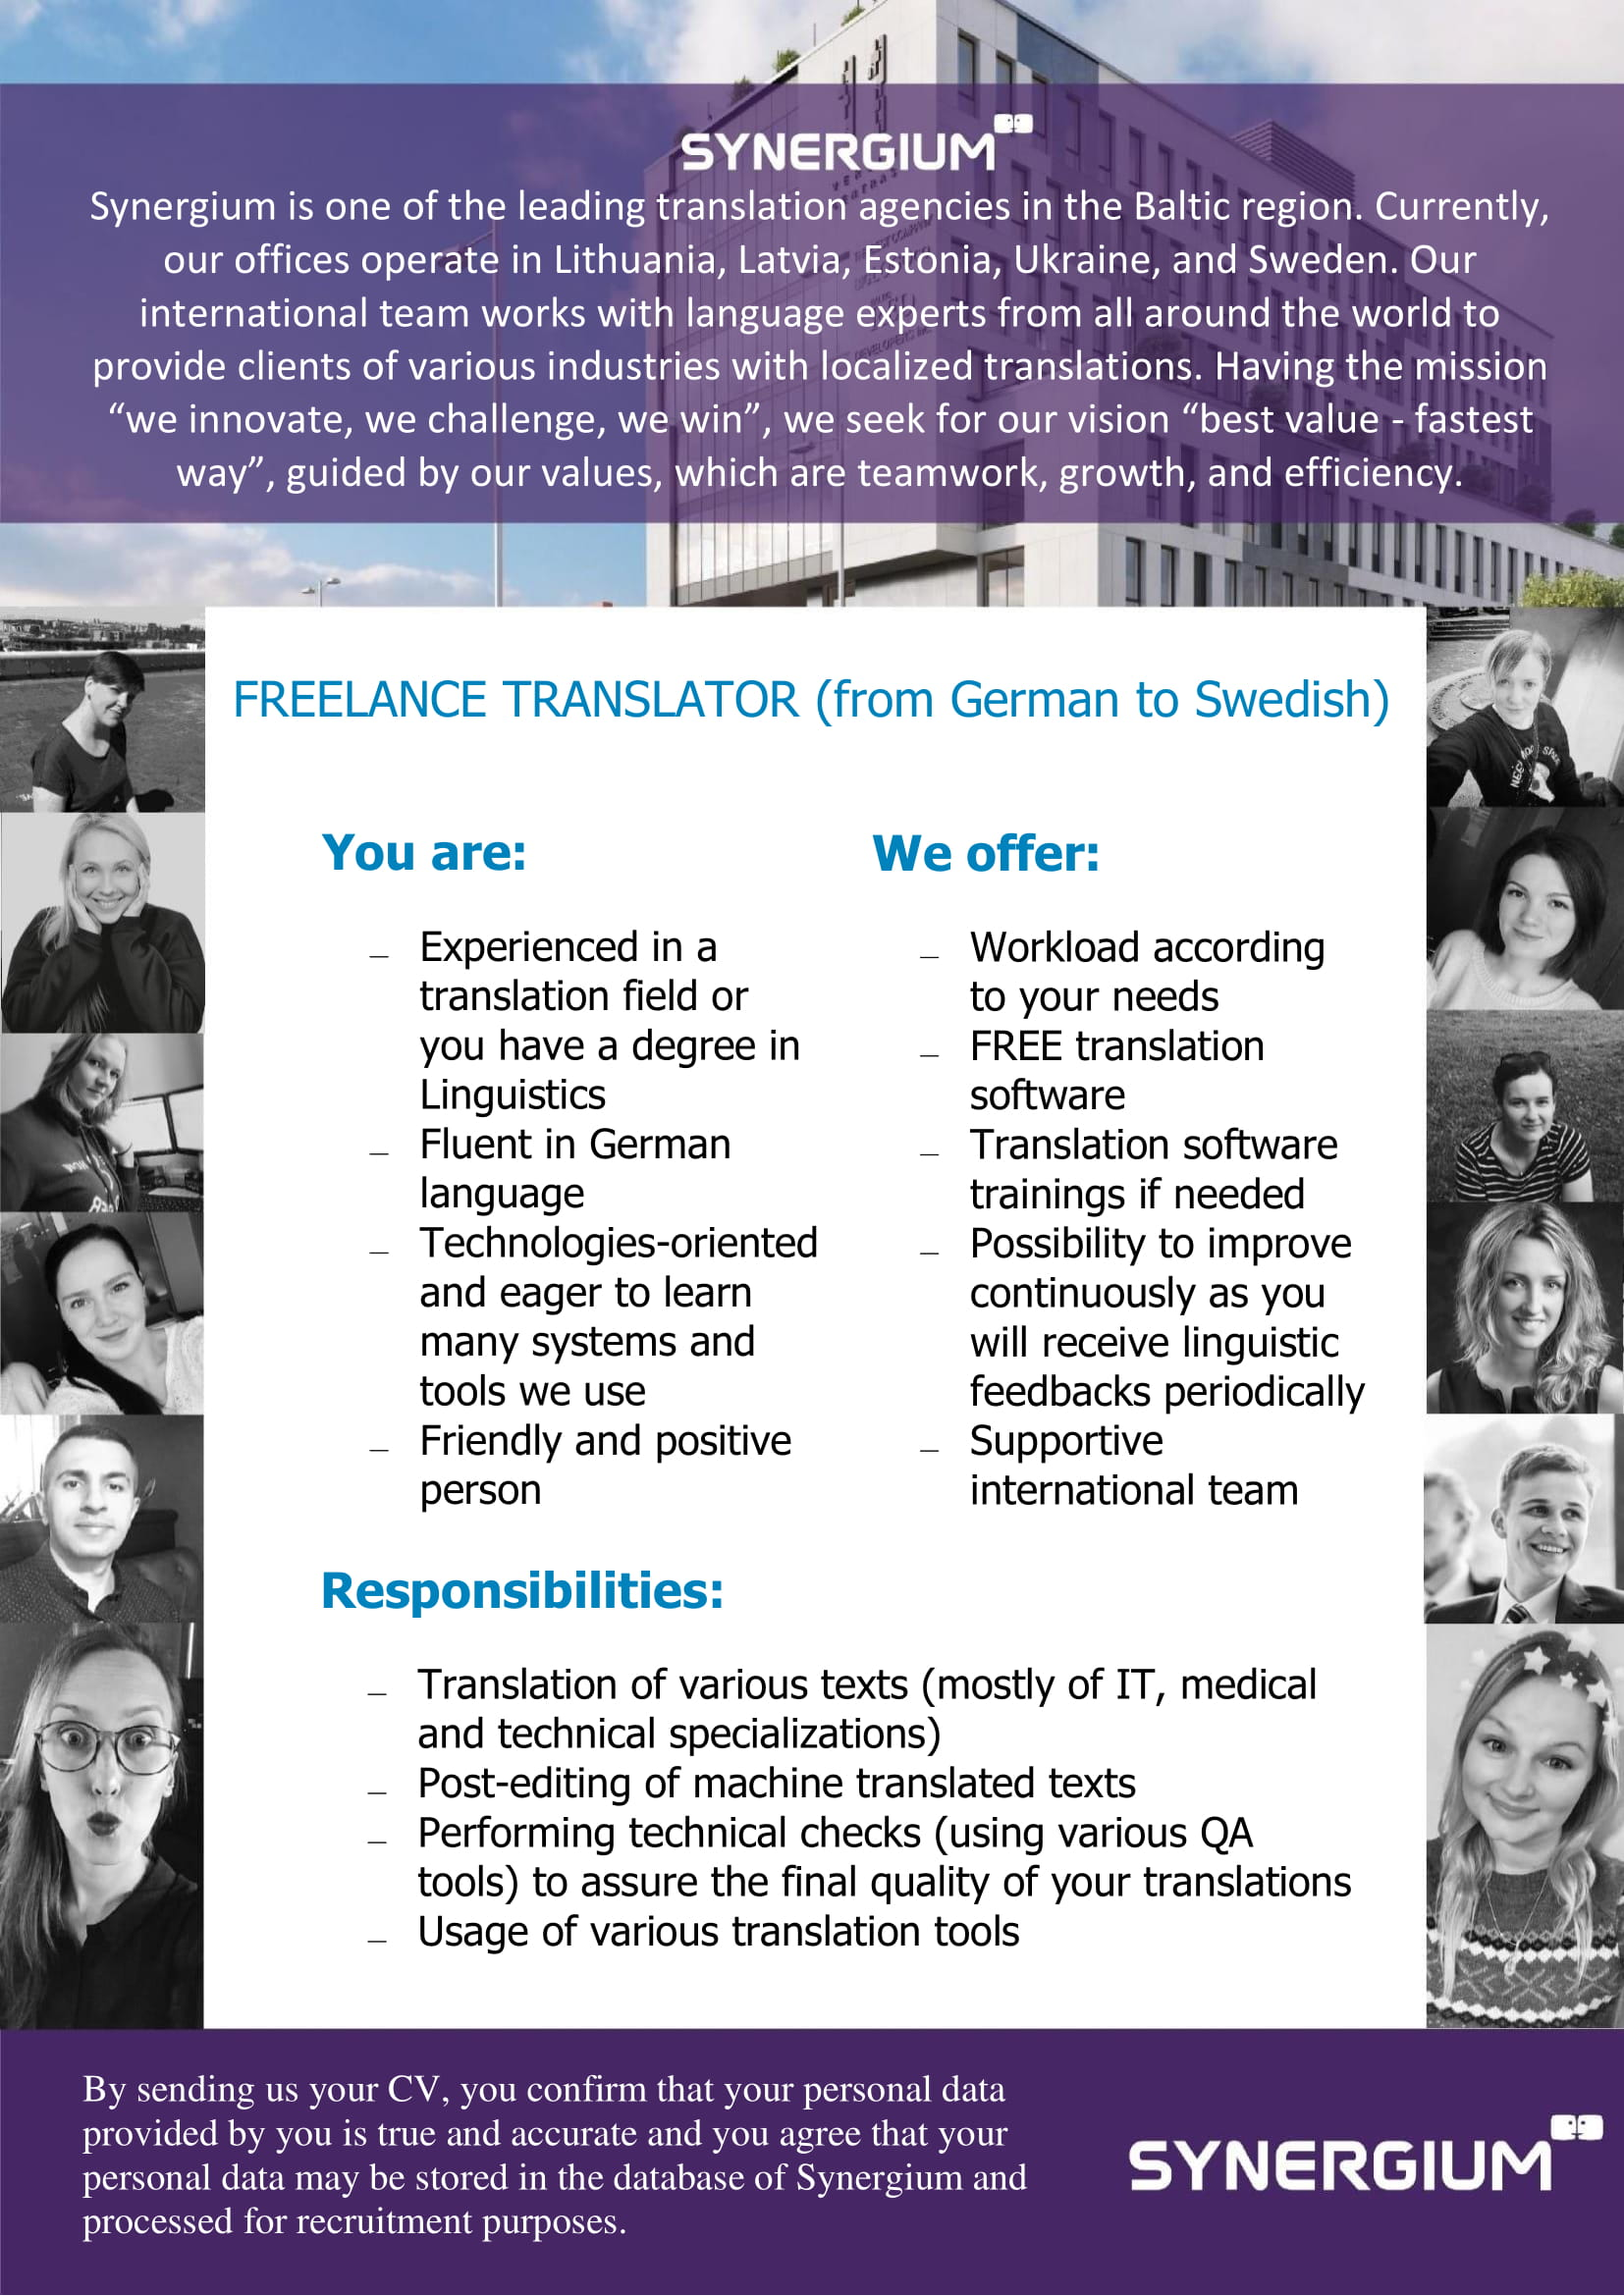 freelance translator from german to swedish job advertisement synergium